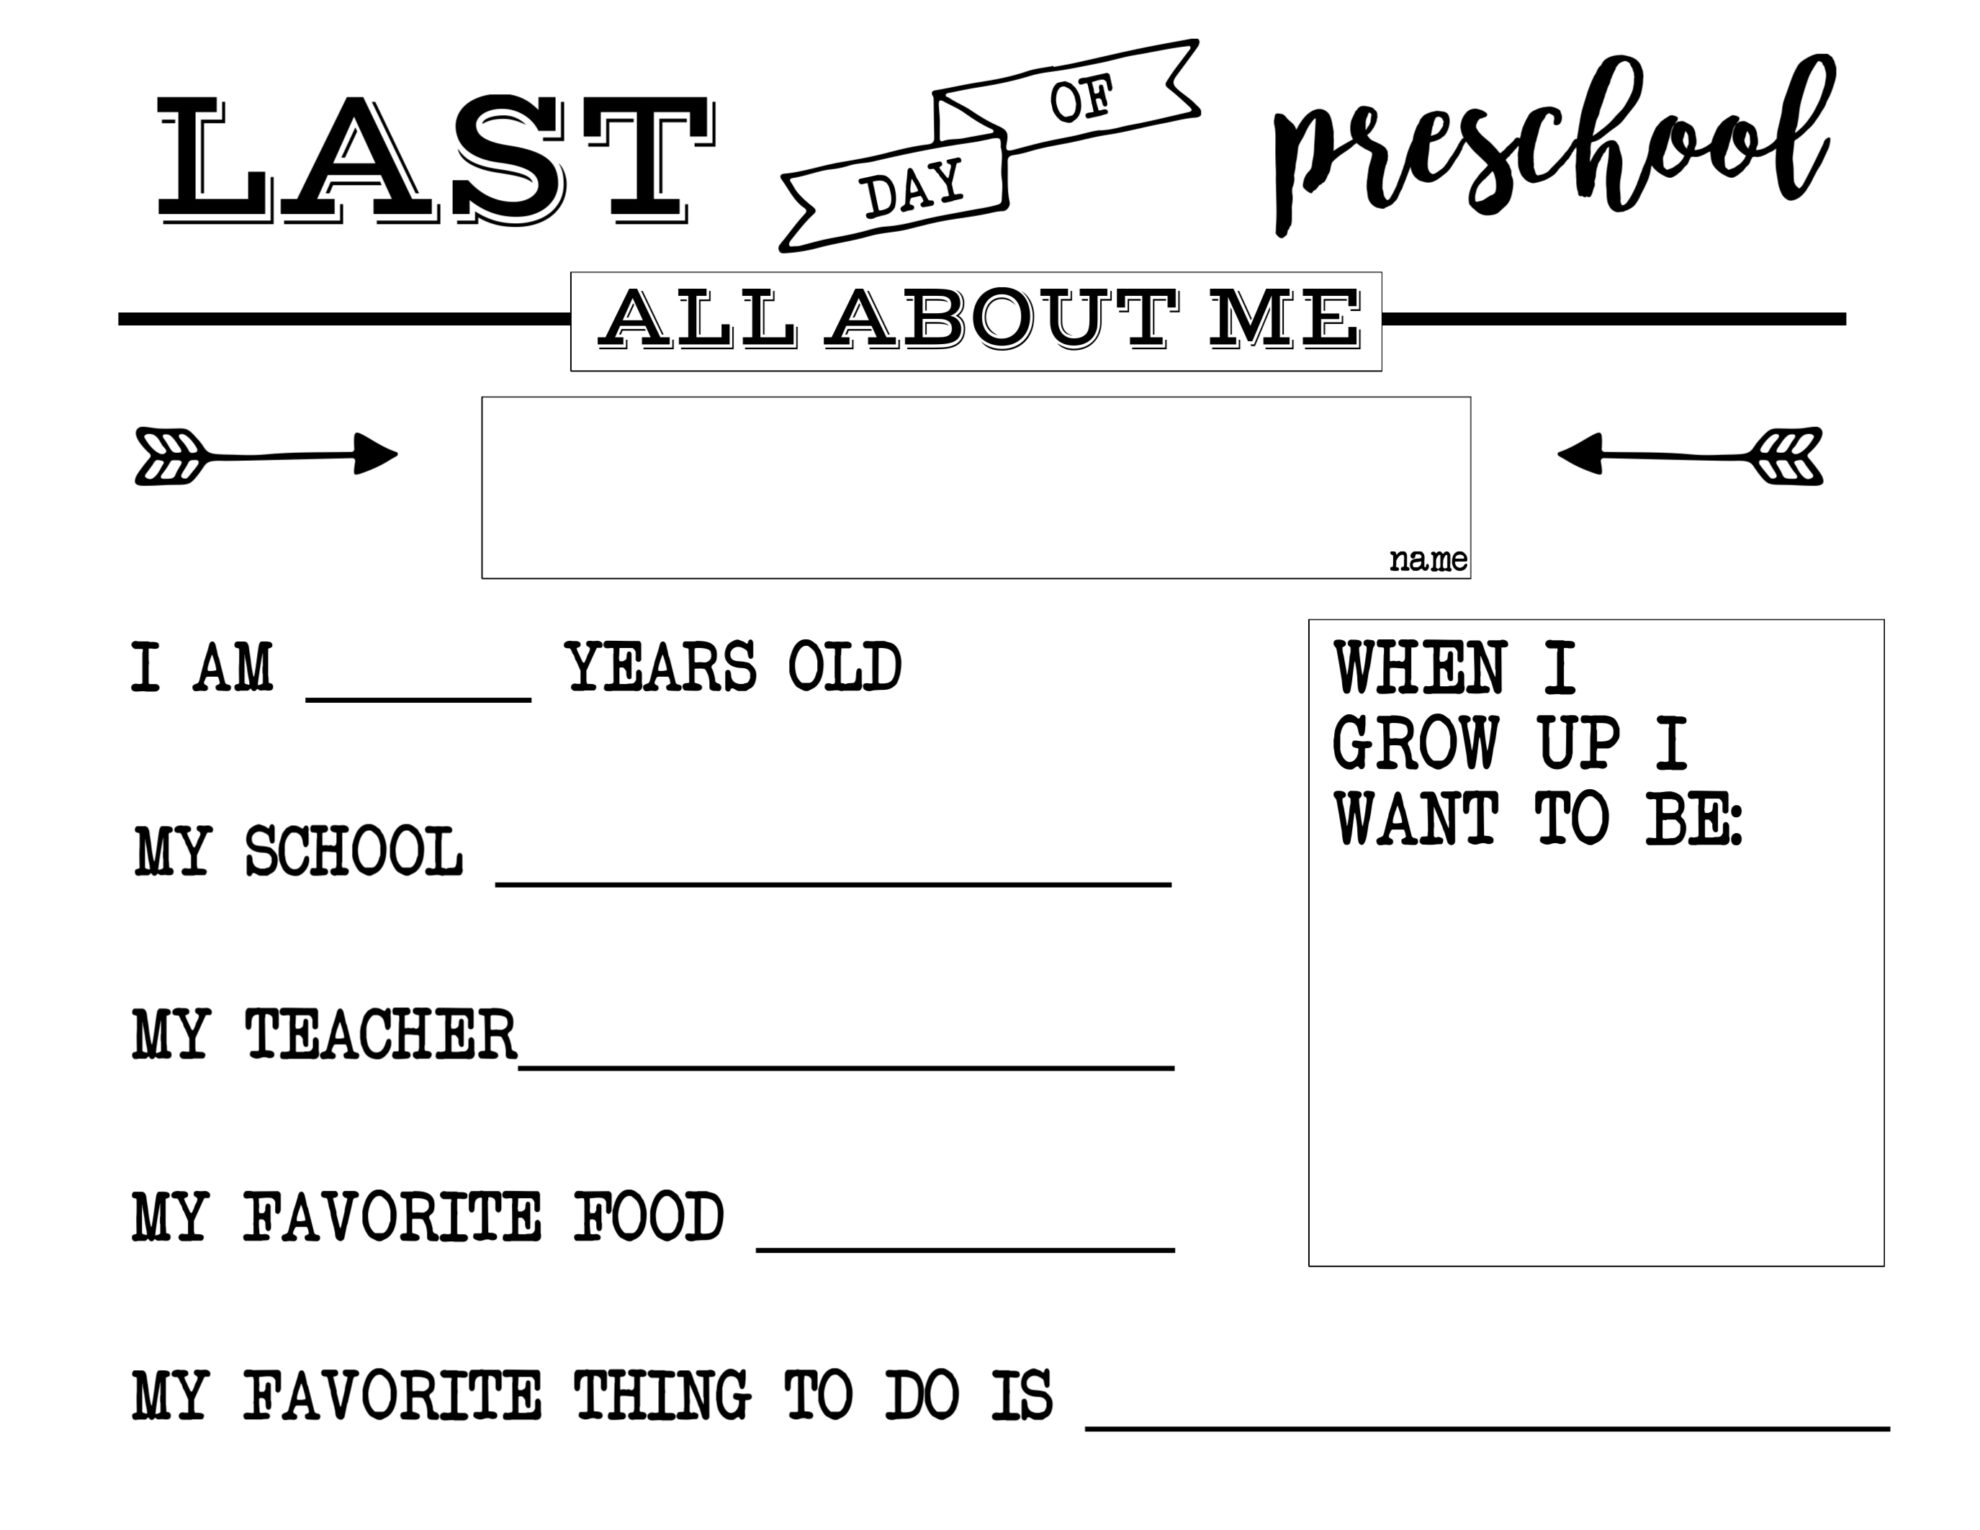 photograph about Last Day of Preschool Sign Printable known as Remaining Working day of College or university No cost Printable All More than Me Indicator - Paper